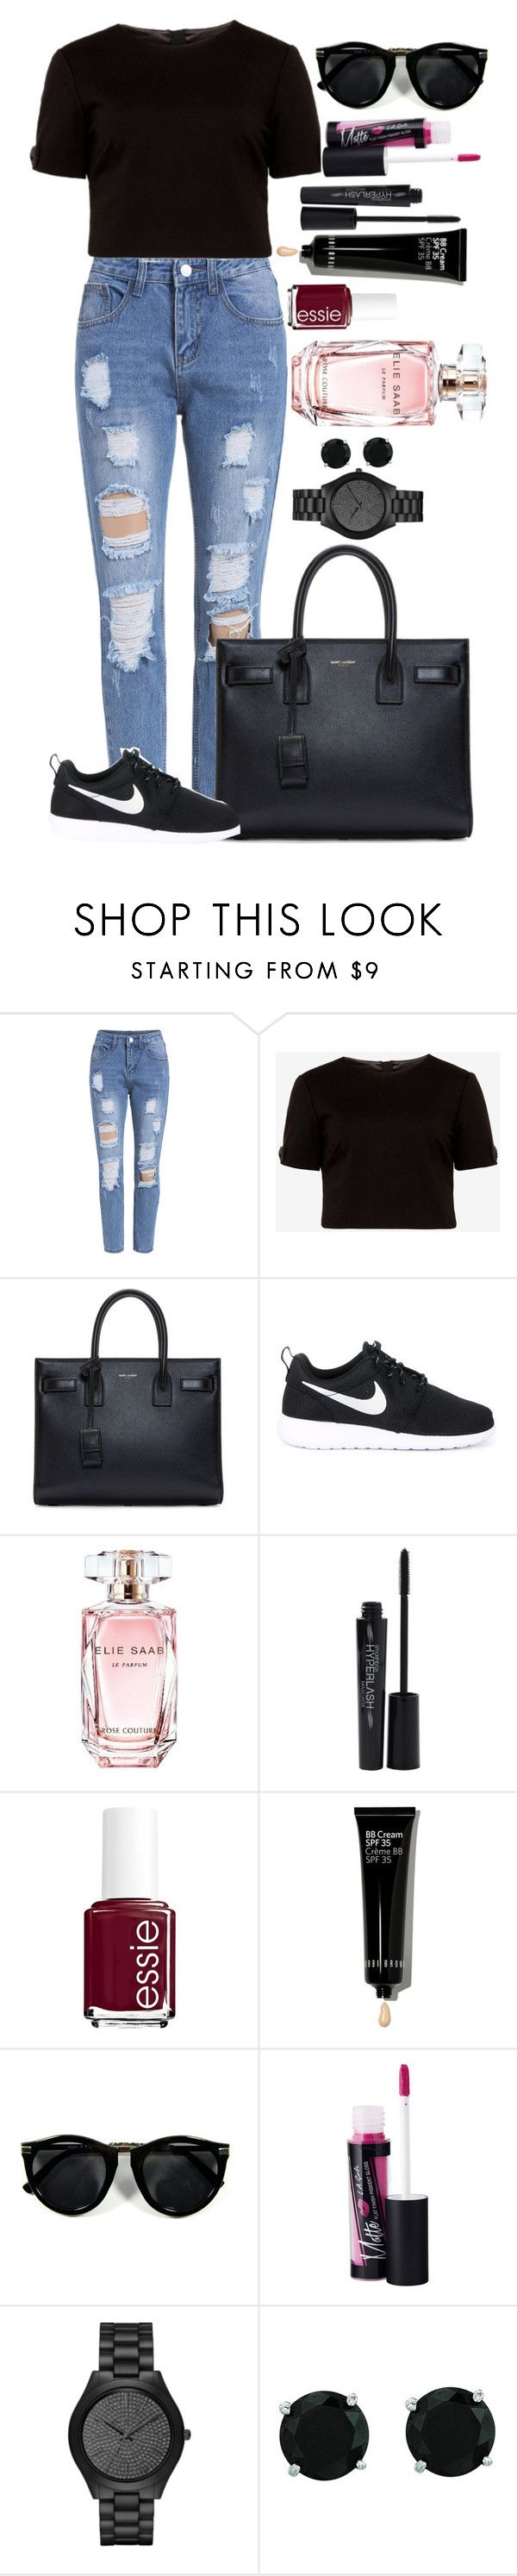 """Untitled #1419"" by fabianarveloc on Polyvore featuring Ted Baker, Yves Saint Laurent, NIKE, Elie Saab, Smashbox, Essie, Bobbi Brown Cosmetics, Fiebiger, Michael Kors and BillyTheTree"